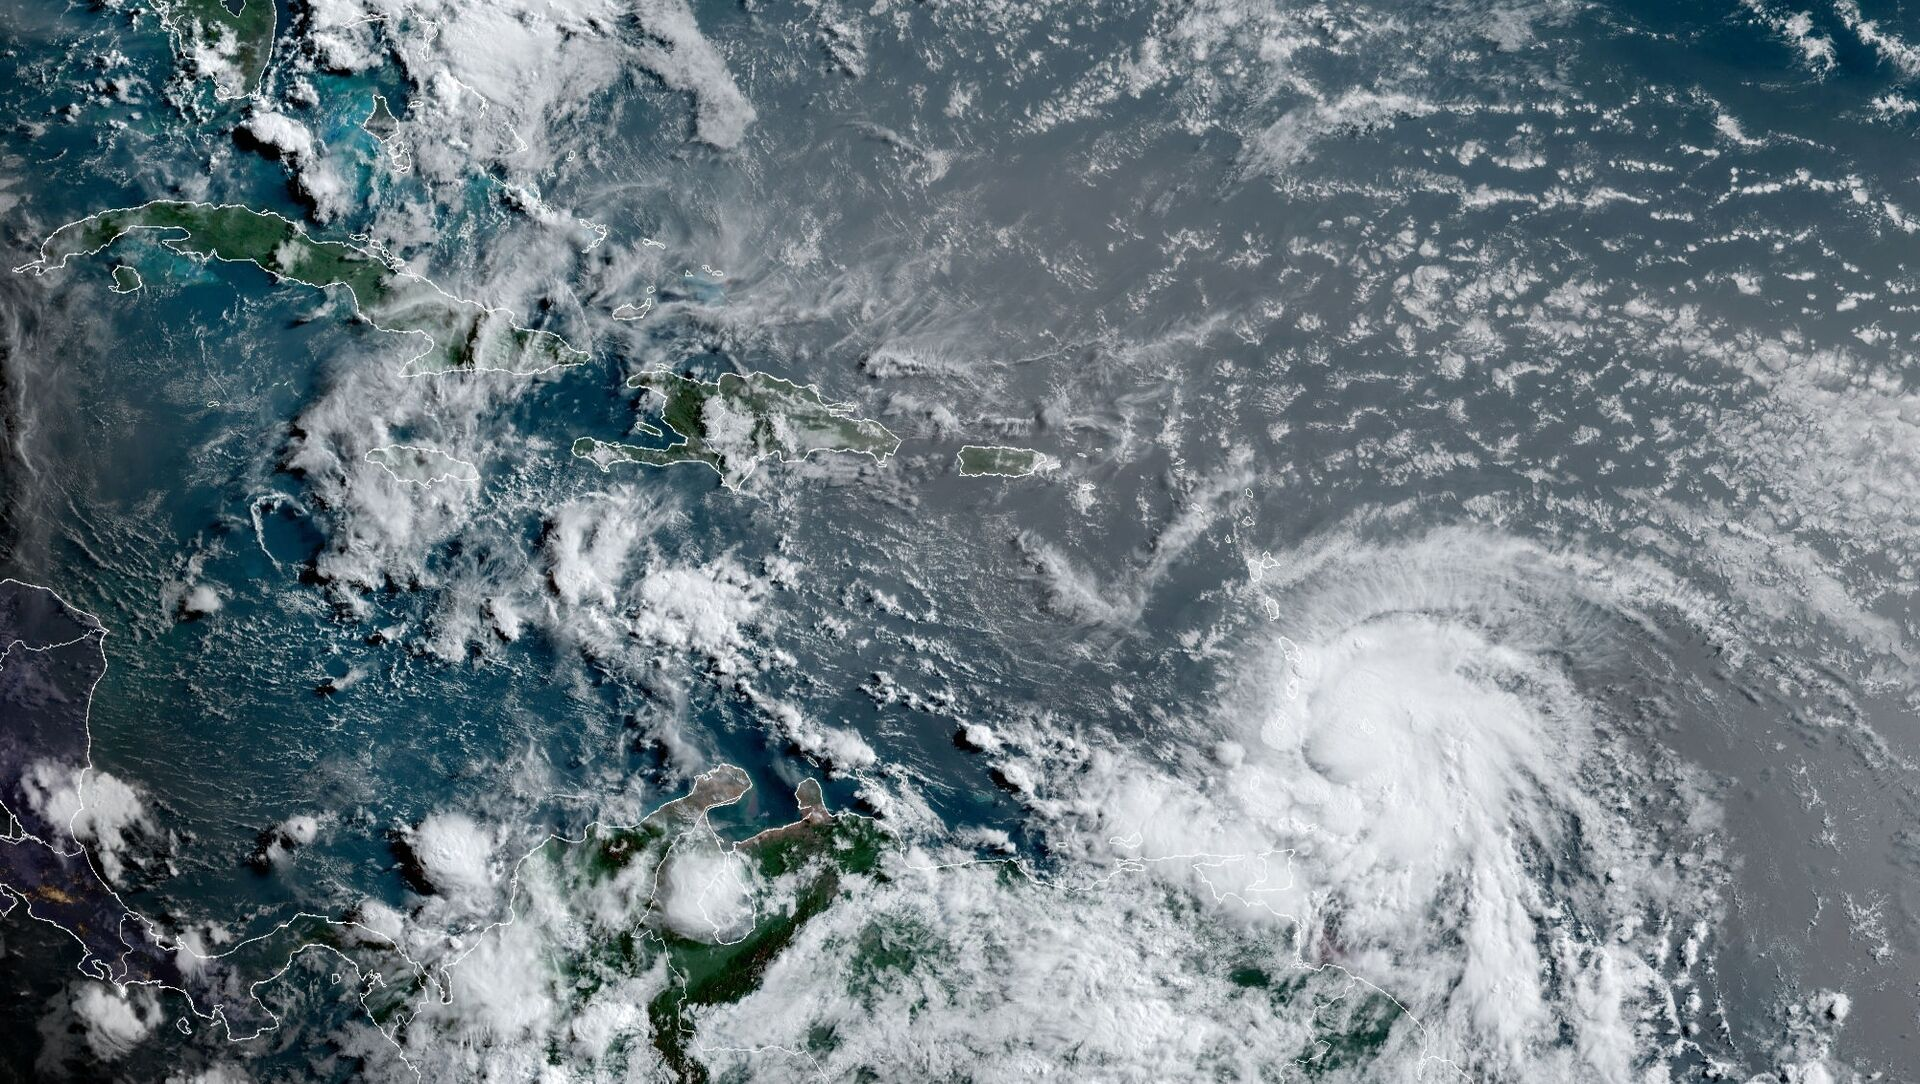 This satellite image provided by the National Oceanic and Atmospheric Administration shows Hurricane Elsa moving through the Caribbean, over Barbados, Tuesday, July 2, 2021, at 12:00 Z (8am a.m. ET). Elsa was expected to pass near the southern coast of Hispaniola on Saturday and to move near Jamaica and portions of eastern Cuba on Sunday. (NOAA/NESDIS/STAR GOES via AP) - Sputnik International, 1920, 02.07.2021